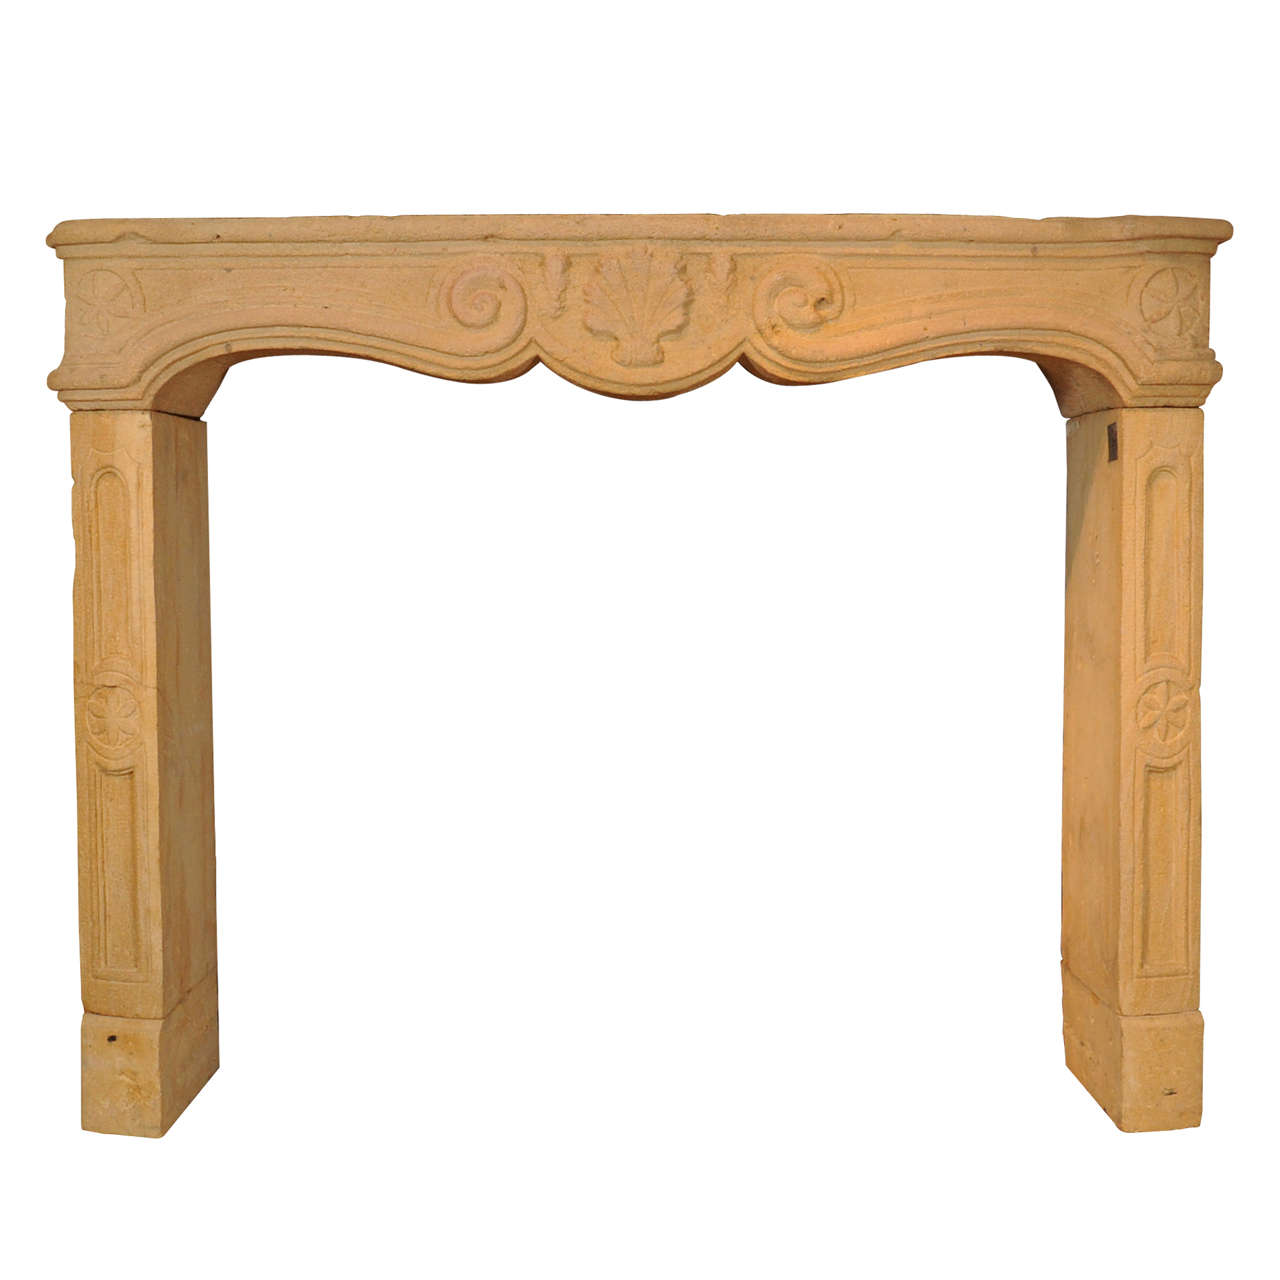 A mid 18th c french baroque fireplace mantel piece for sale at 1stdibs - Fireplace mantel piece ...